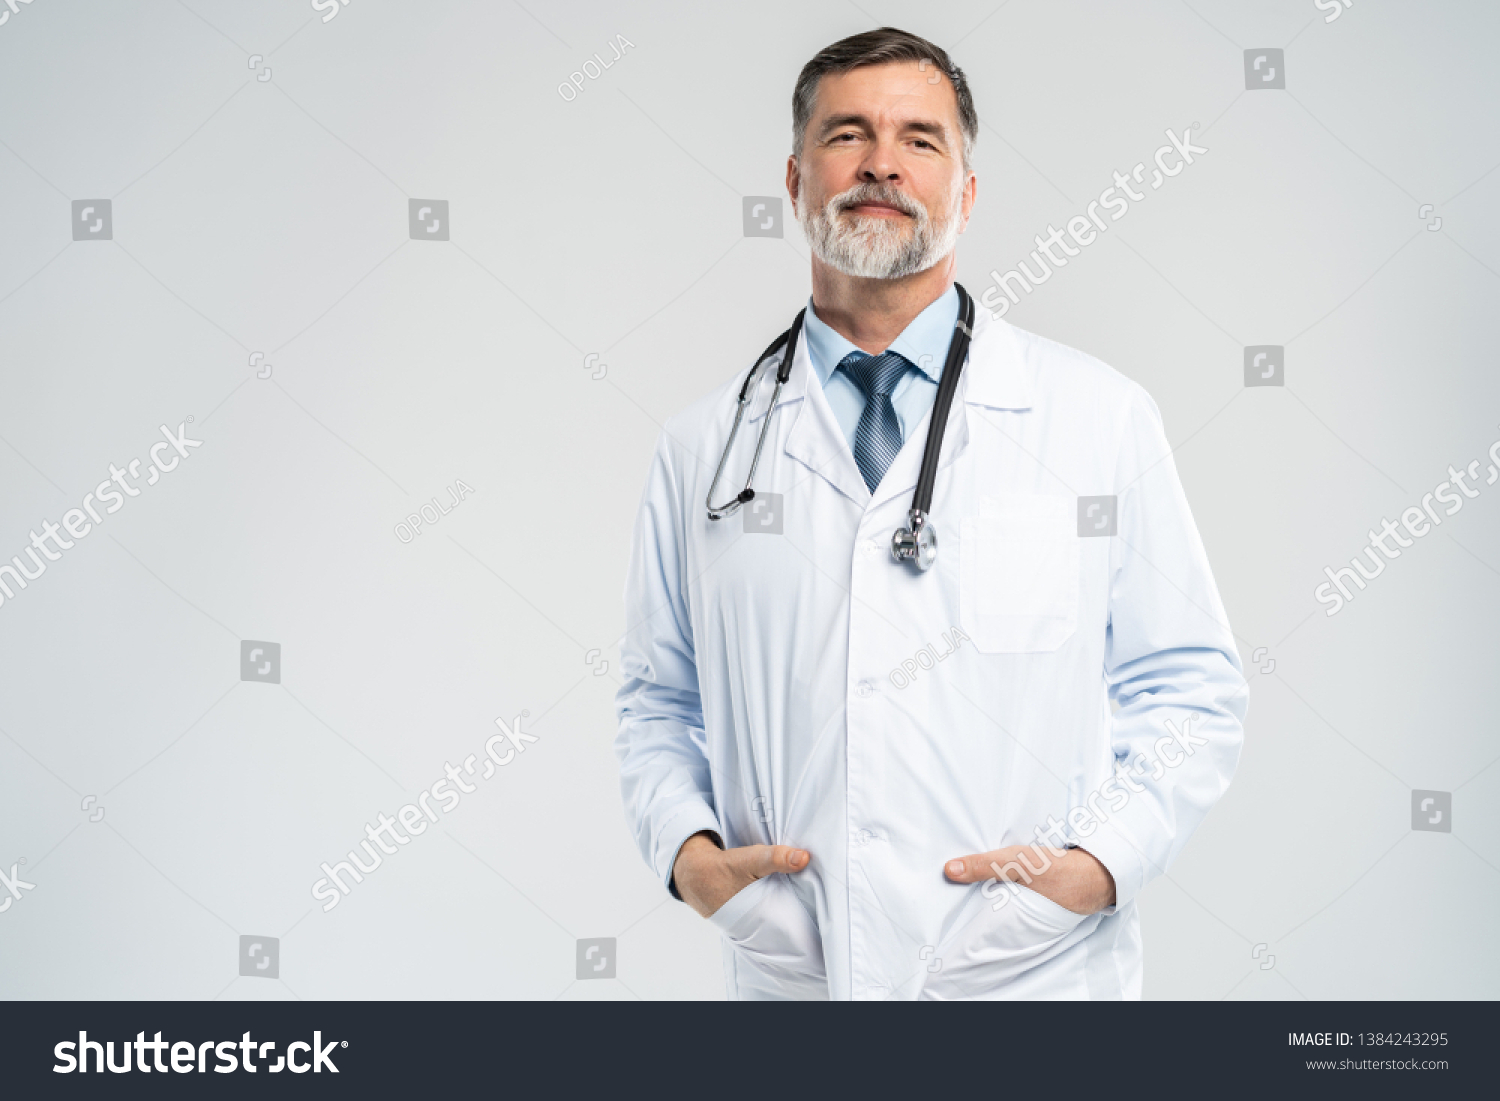 Cheerful mature doctor posing and smiling at camera, healthcare and medicine #1384243295